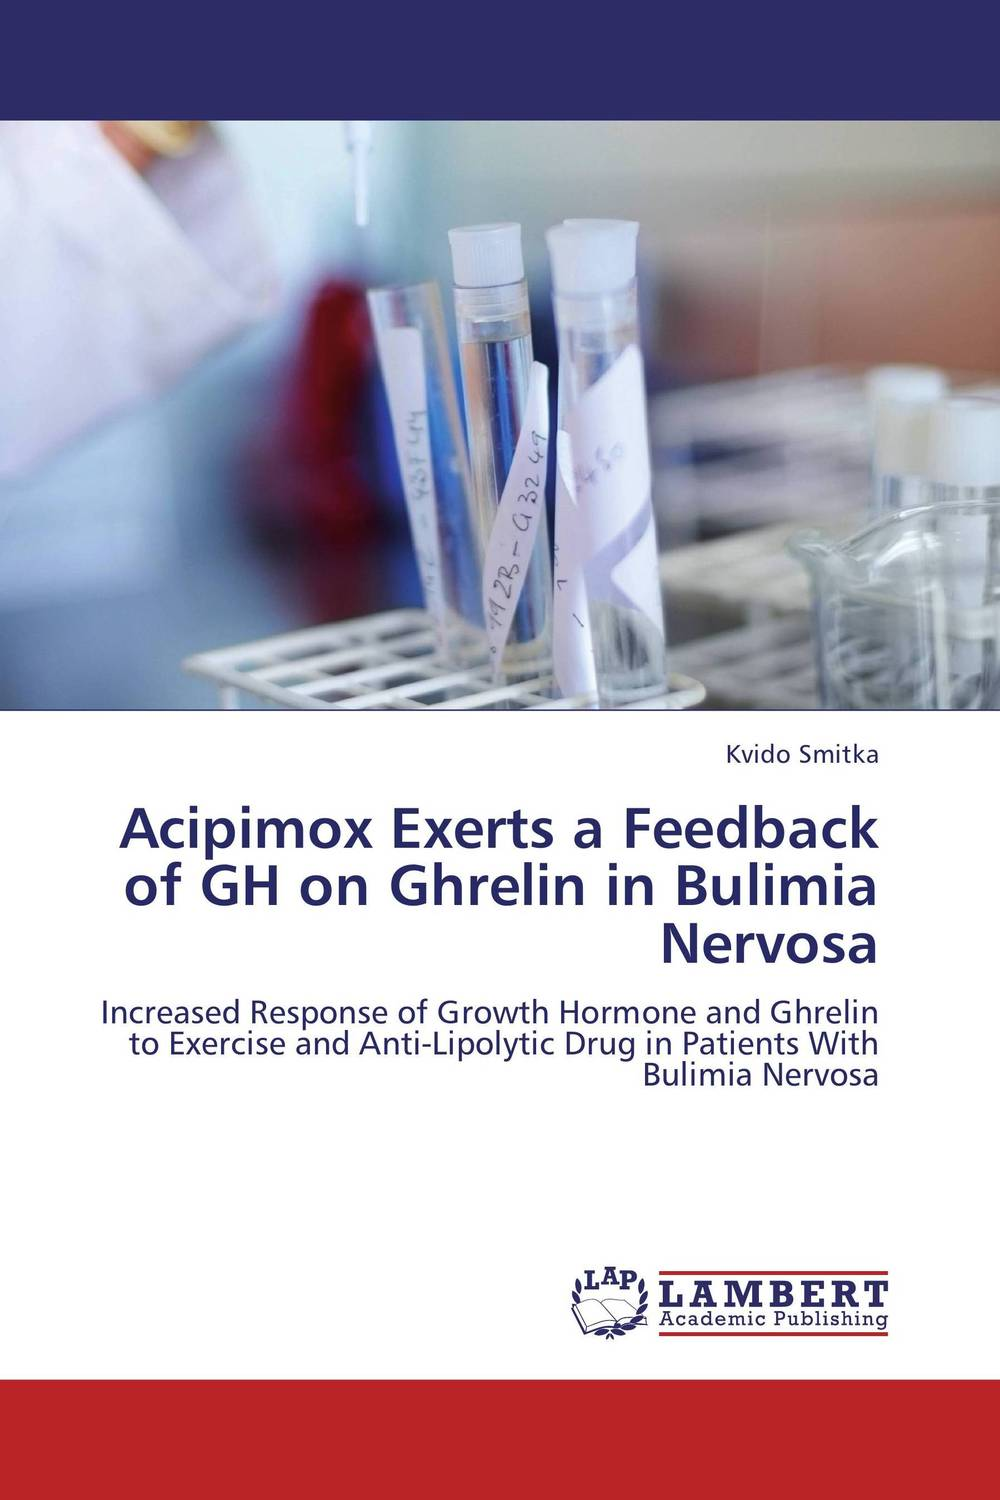 Acipimox Exerts a Feedback of GH on Ghrelin in Bulimia Nervosa the role of family interventions in the therapy of eating disorders